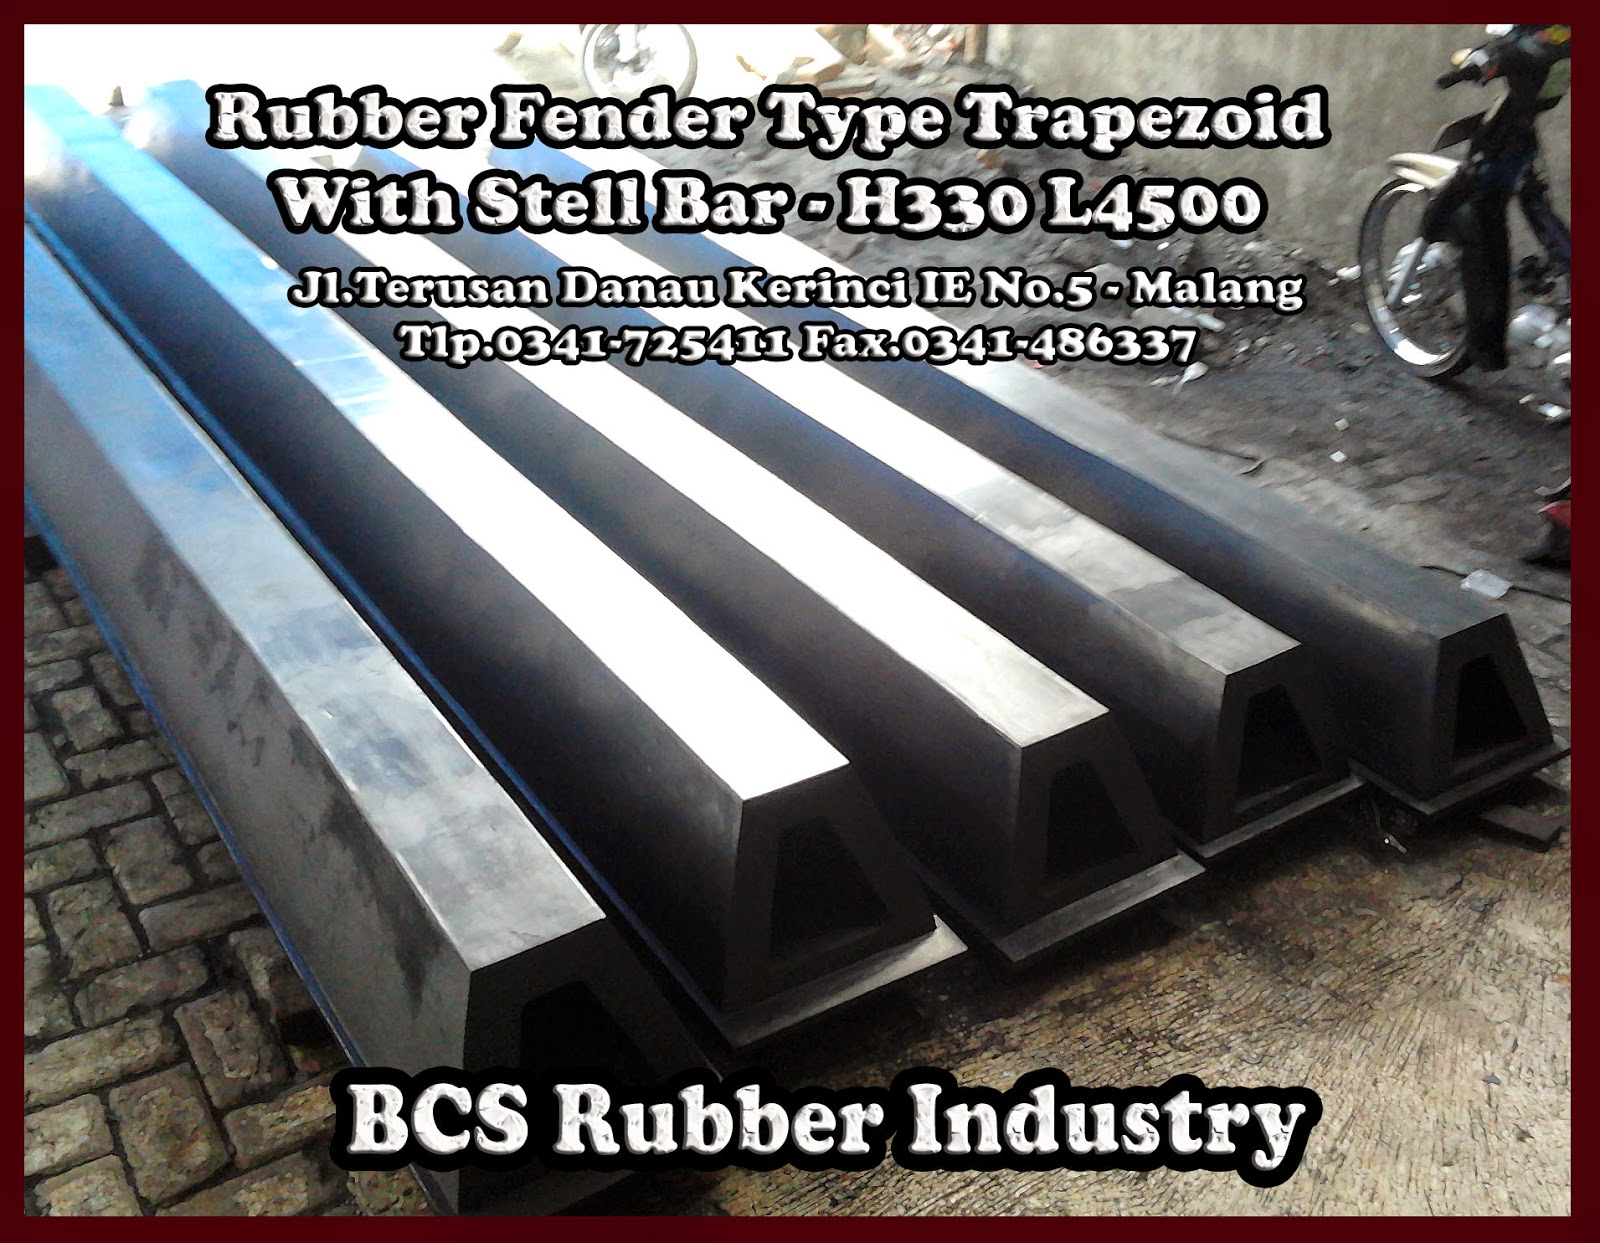 Rubber Fender Type Trapezoid,Rubber Fender Type Trapezoid.Rubber Fender Type Trapezoid.Rubber Fender